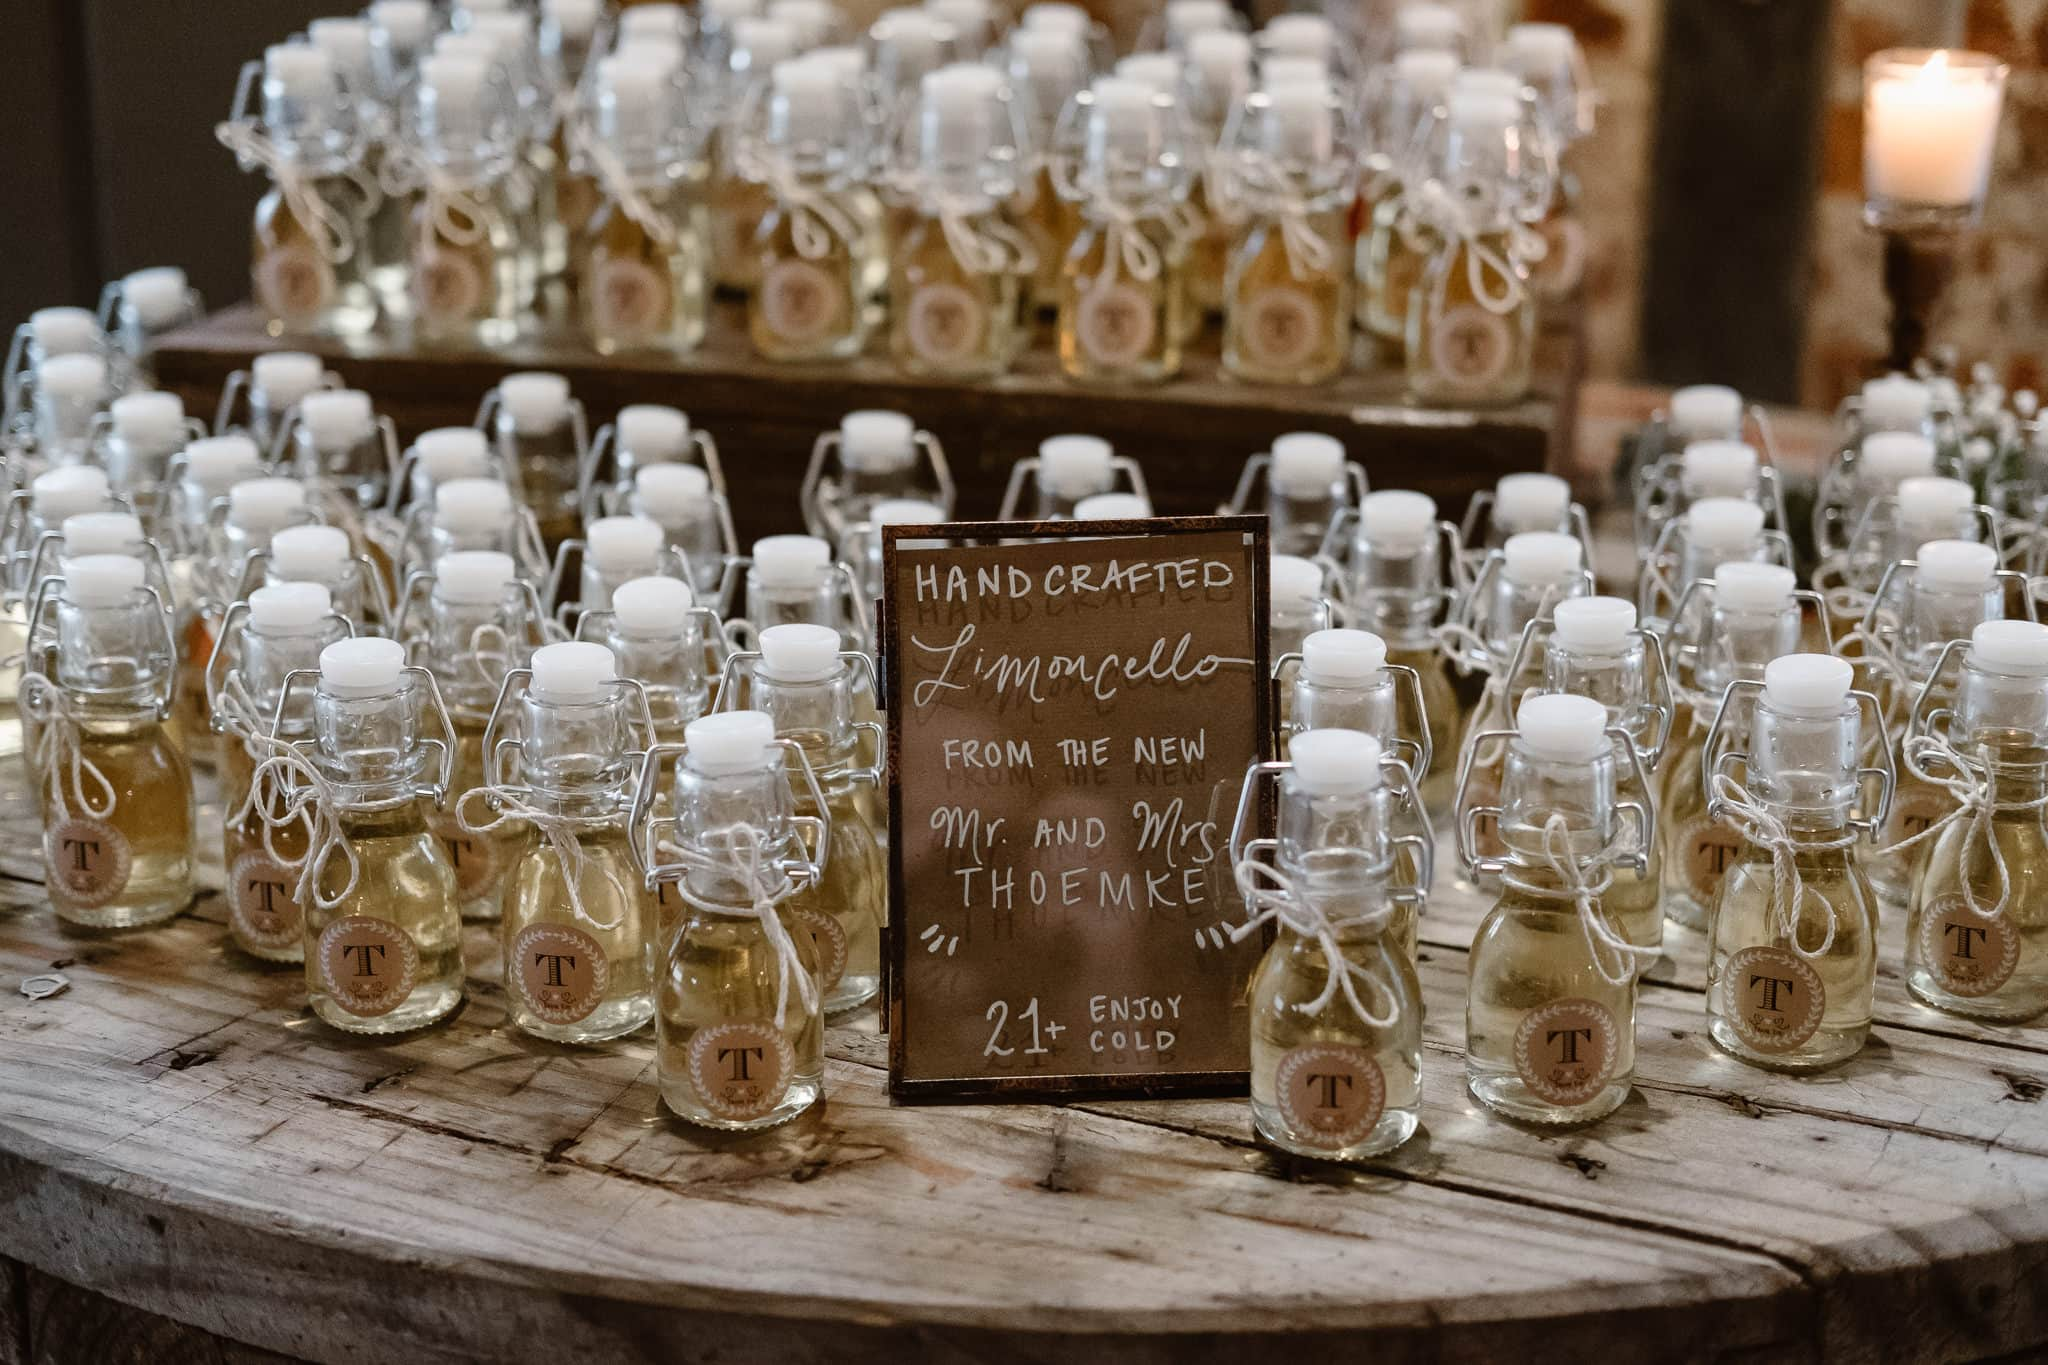 St Vrain Wedding Photographer | Longmont Wedding Photographer | Colorado Winter Wedding Photographer, Colorado industrial chic wedding ceremony, limoncello wedding favors